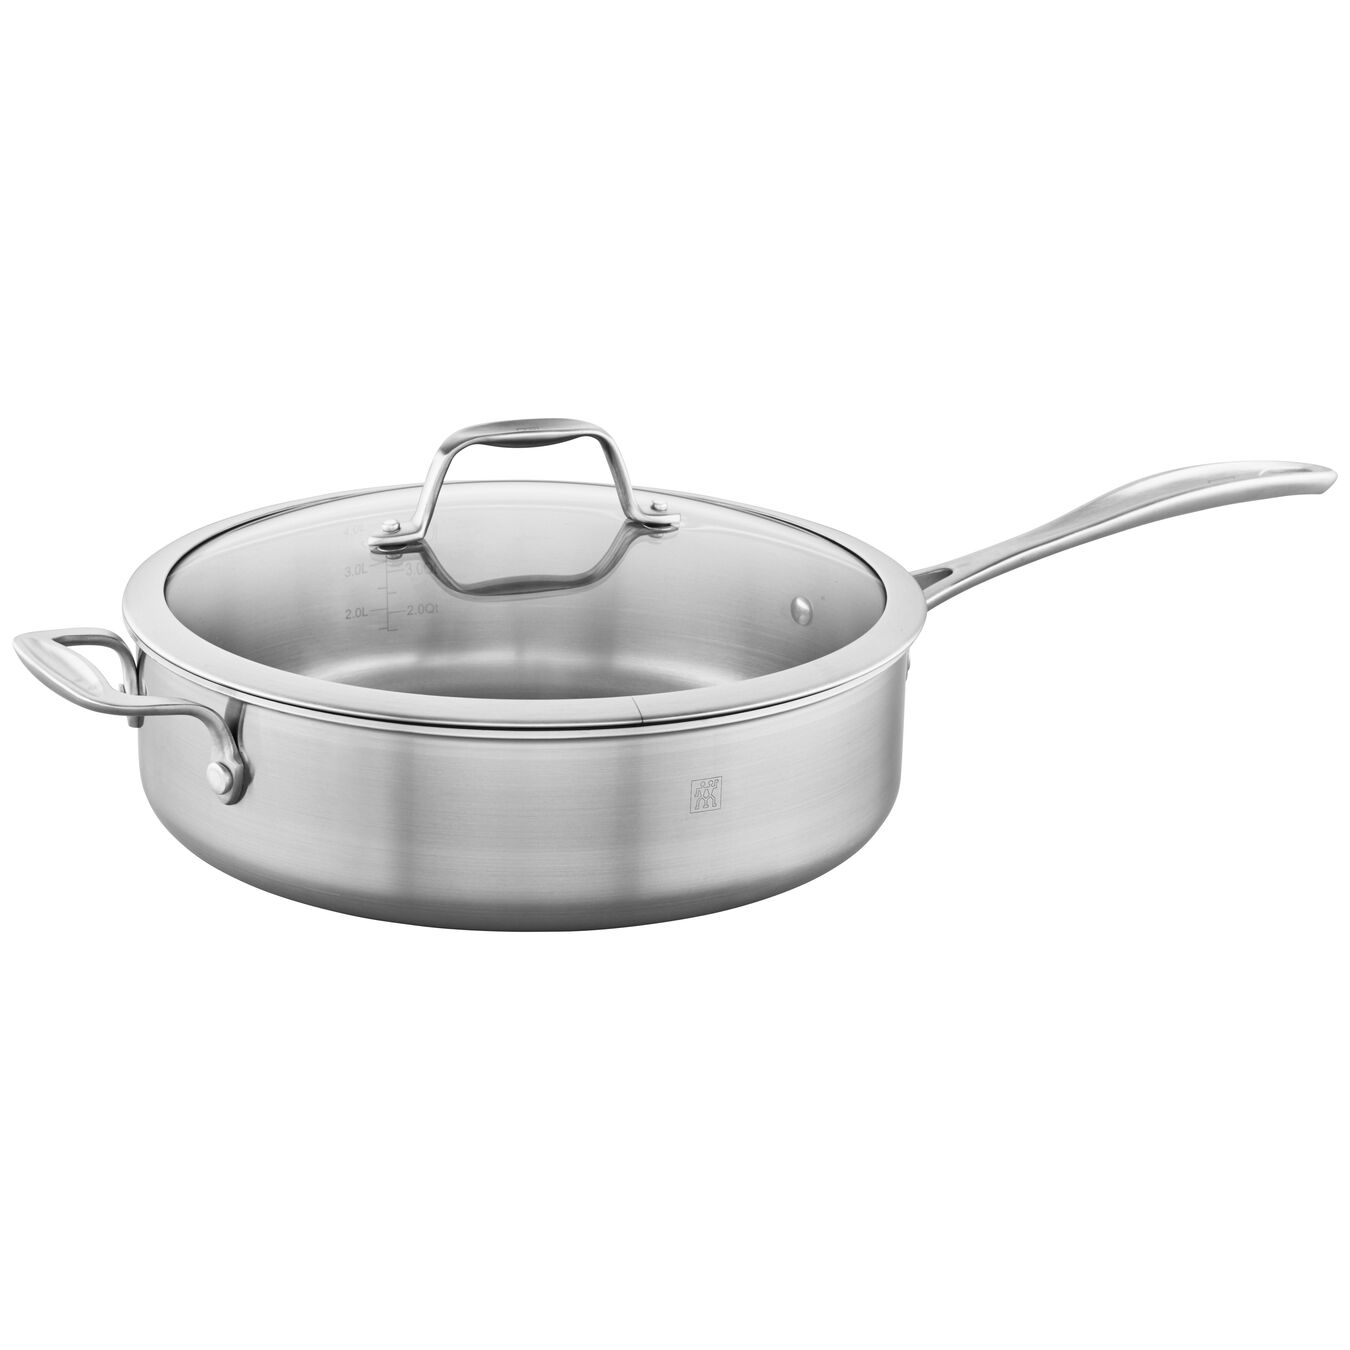 3-ply 5-qt Stainless Steel Saute Pan,,large 3